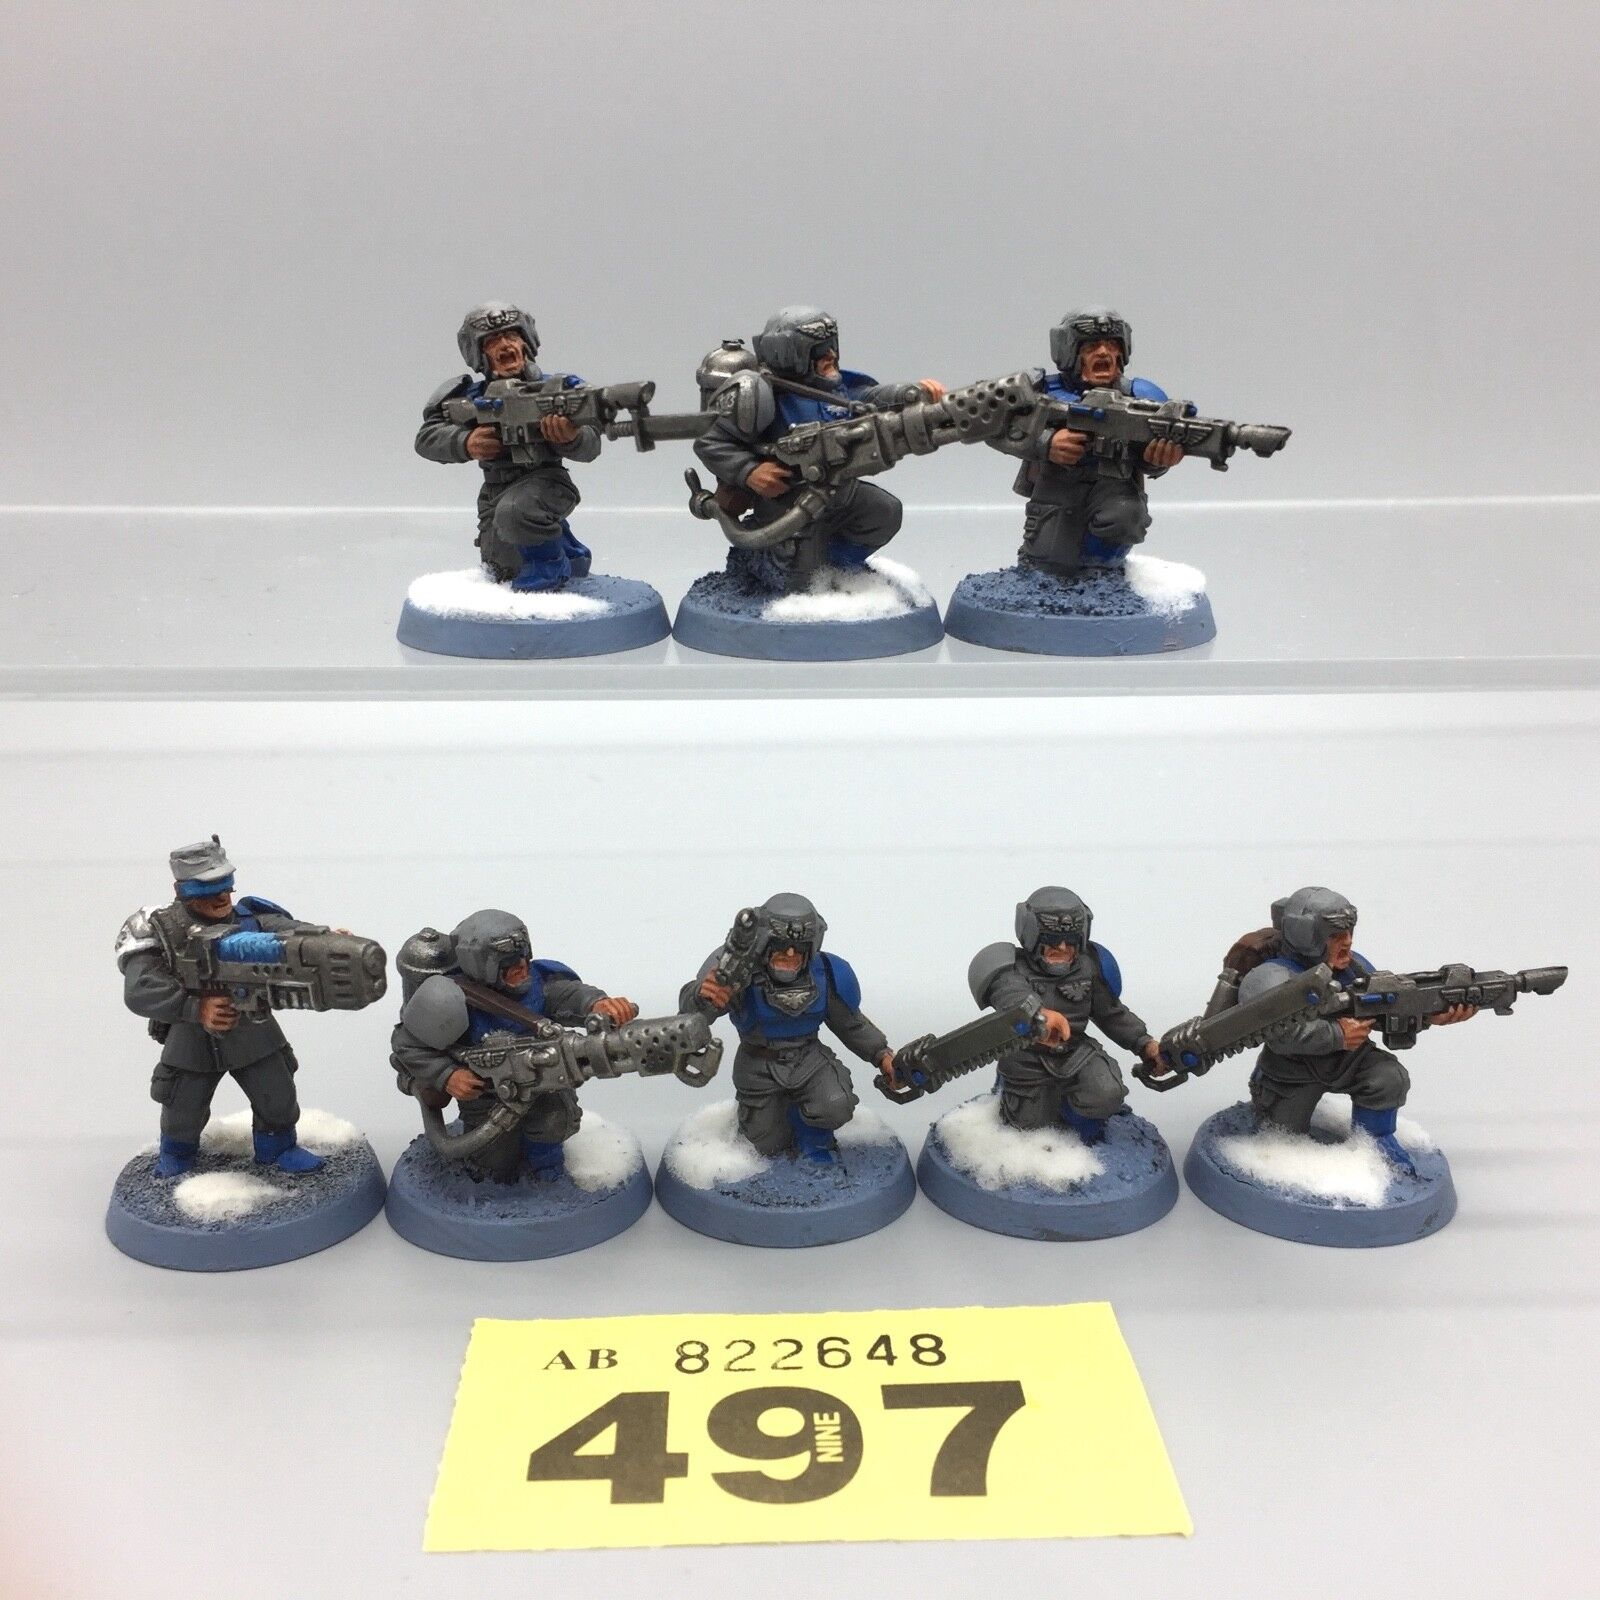 WARHAMMER 40,000 IMPERIAL GUARD ASTRA MILITARUM CADIAN VALHALLAN SNOW PAINTED